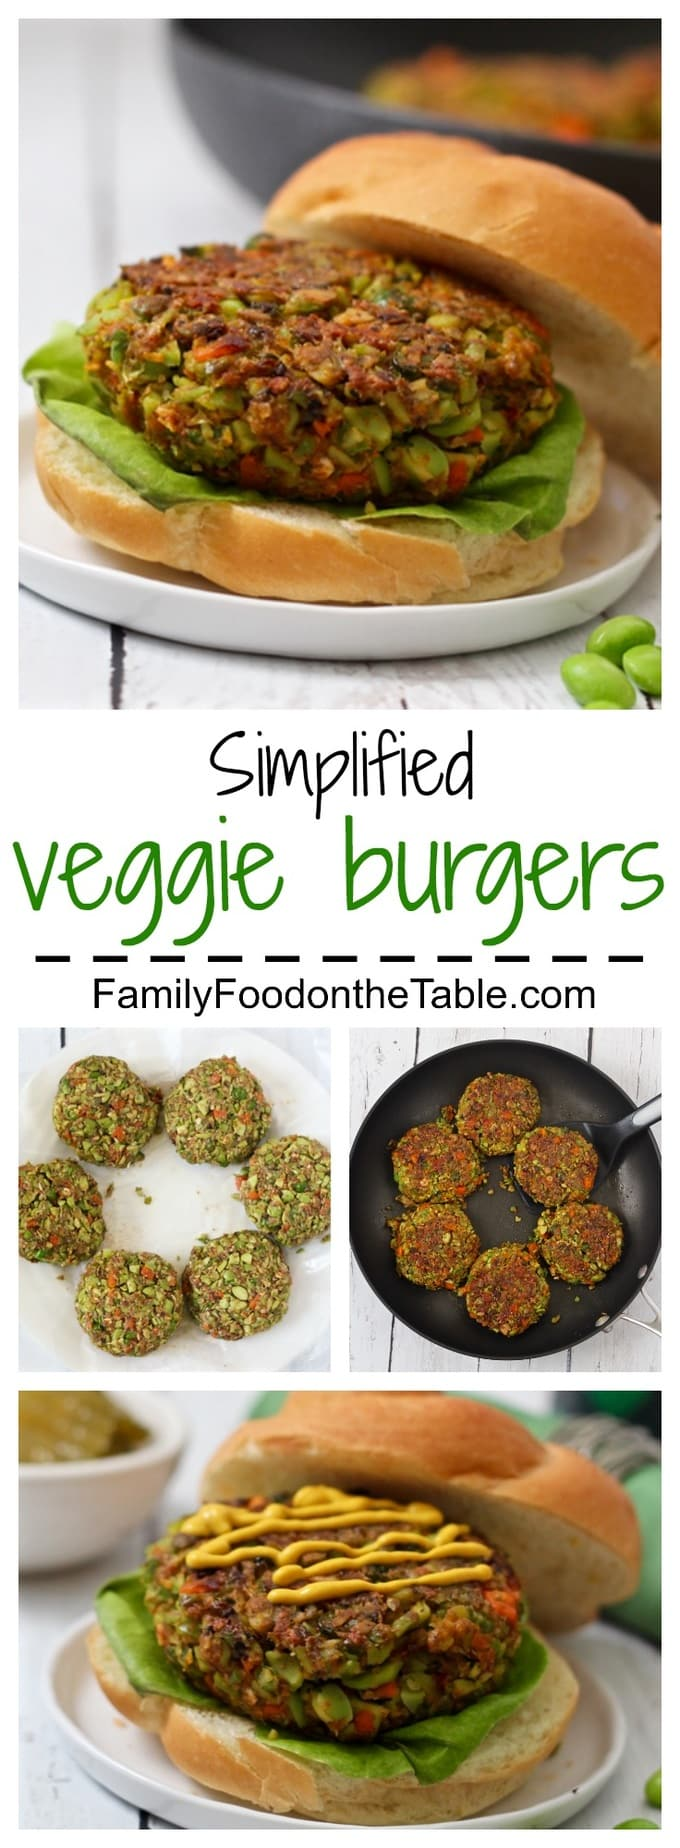 3 frozen vegetables plus seasonings are all you need to make these tasty veggie burgers!